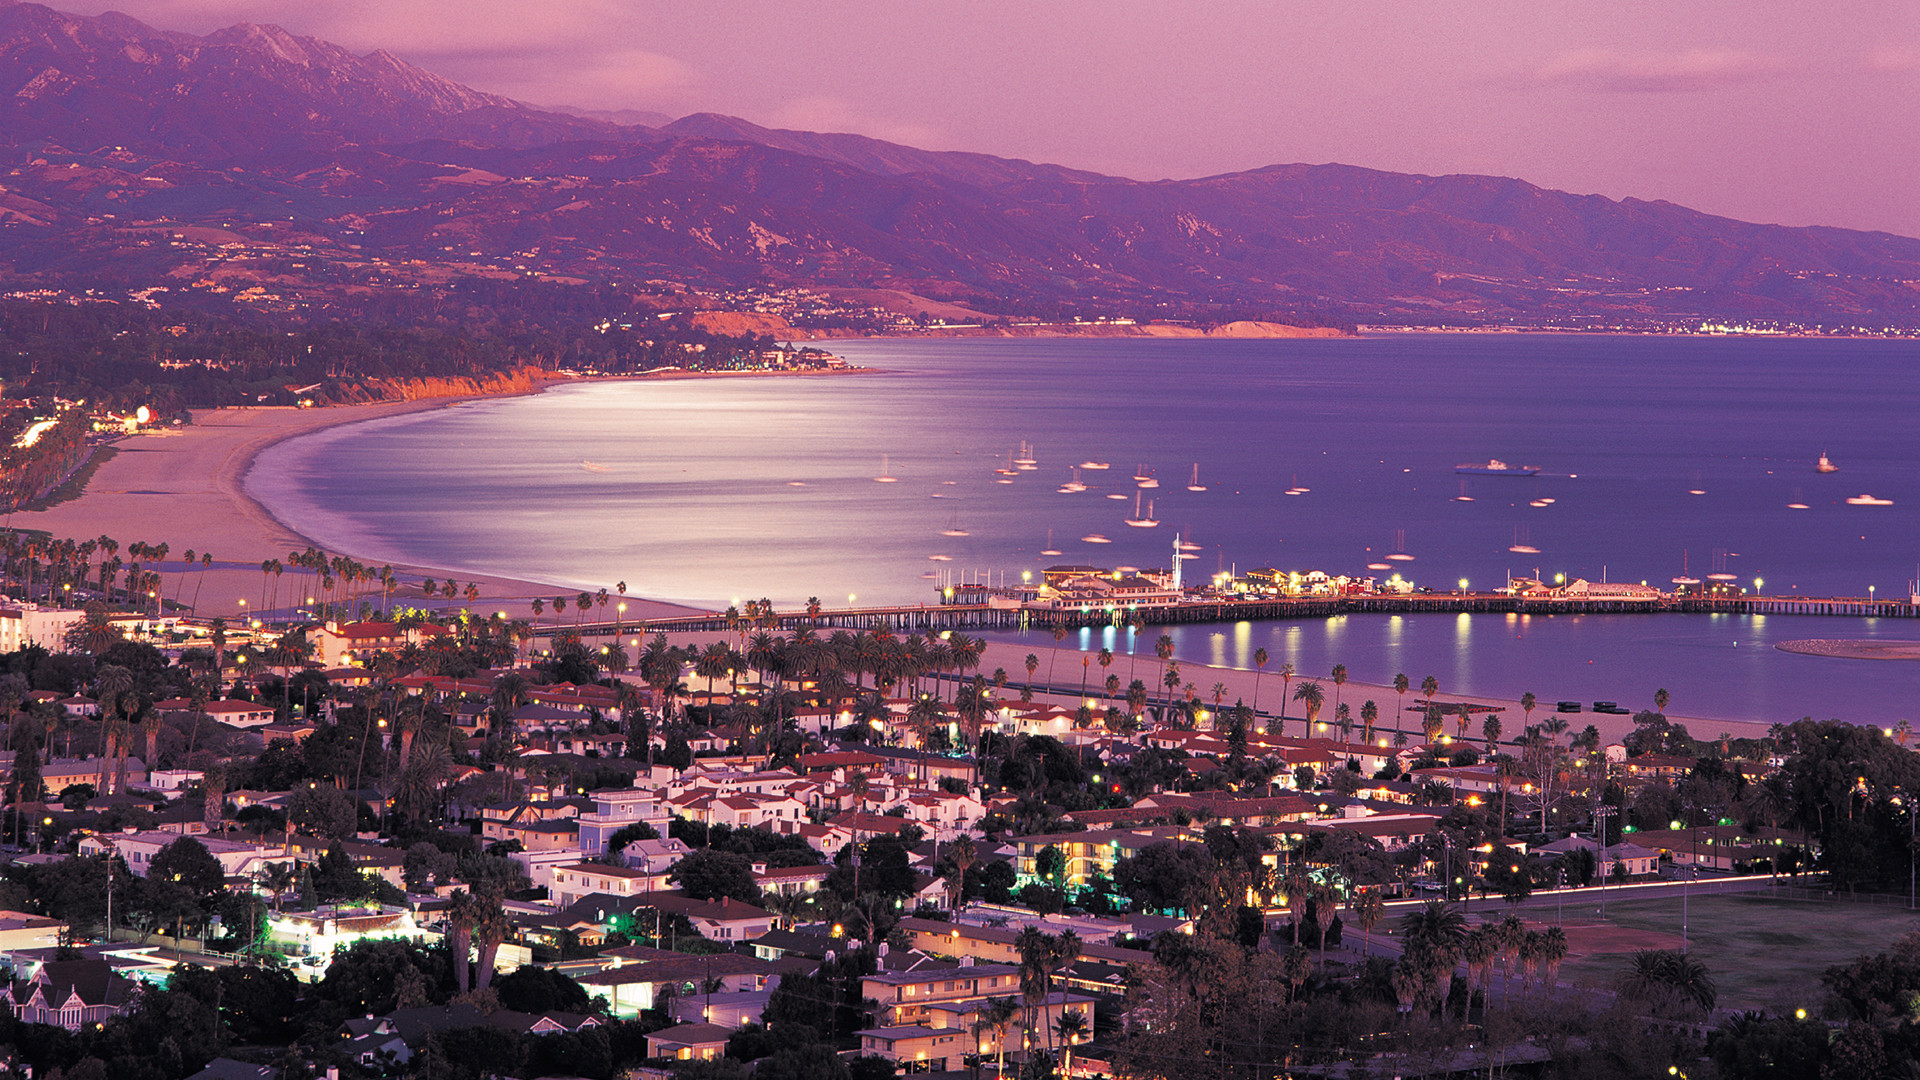 The small coastal city of Santa Barbara 'The American Riviera'